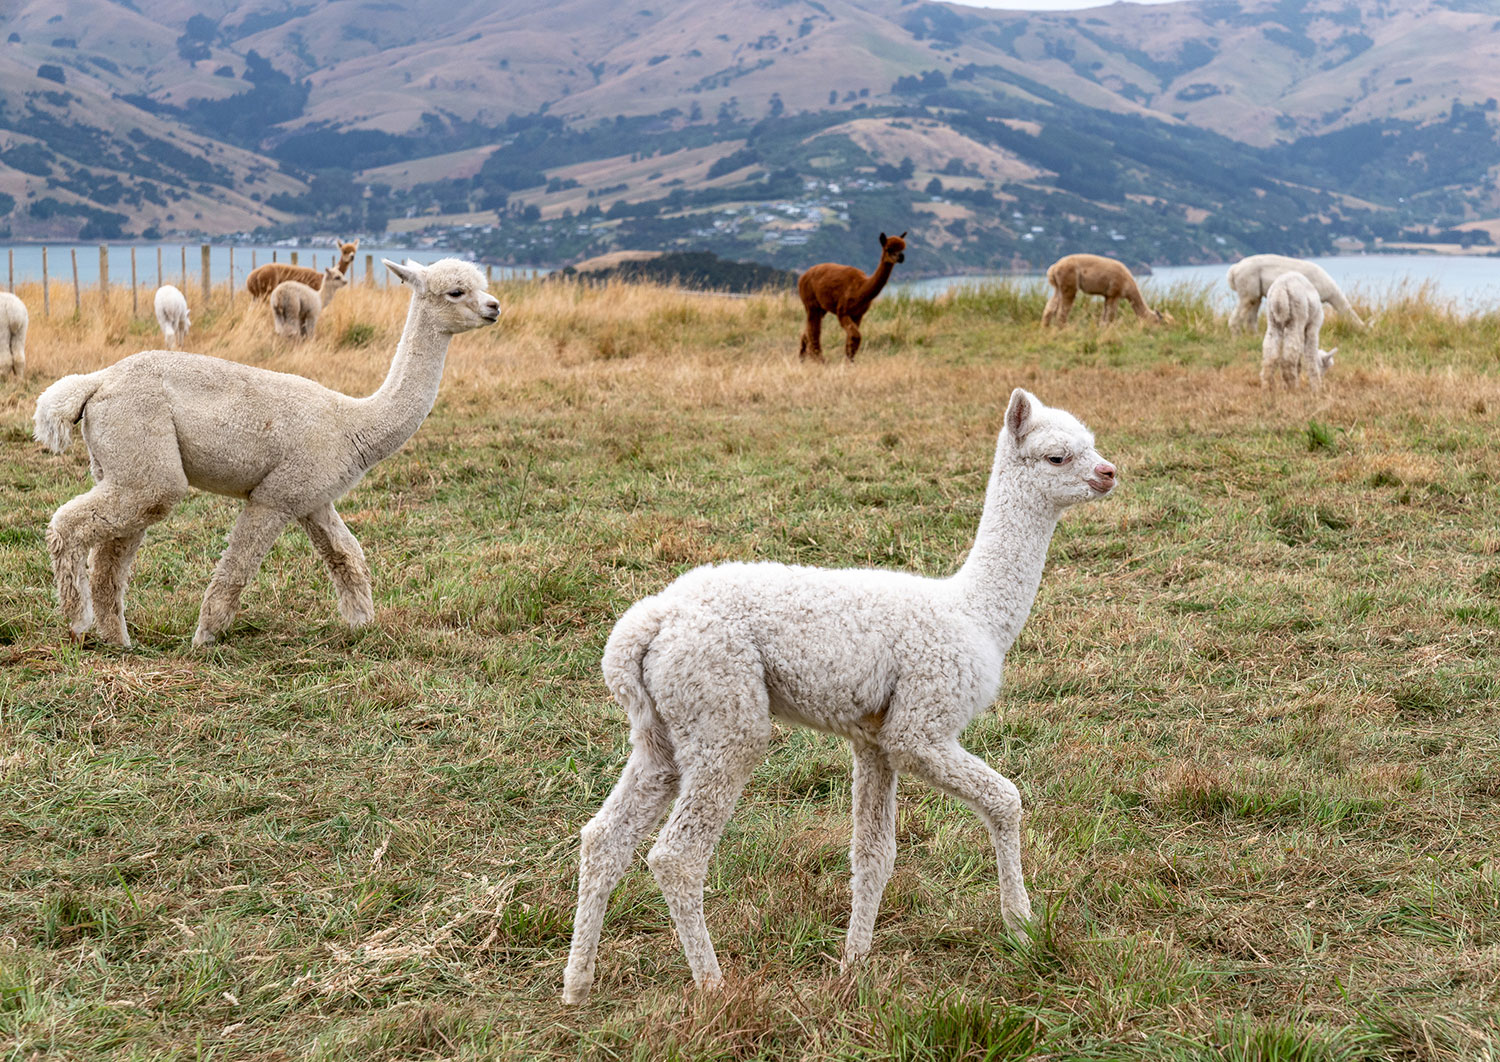 Cute alpacas at Shamarra Alpaca Farm in Akaroa, New Zealand